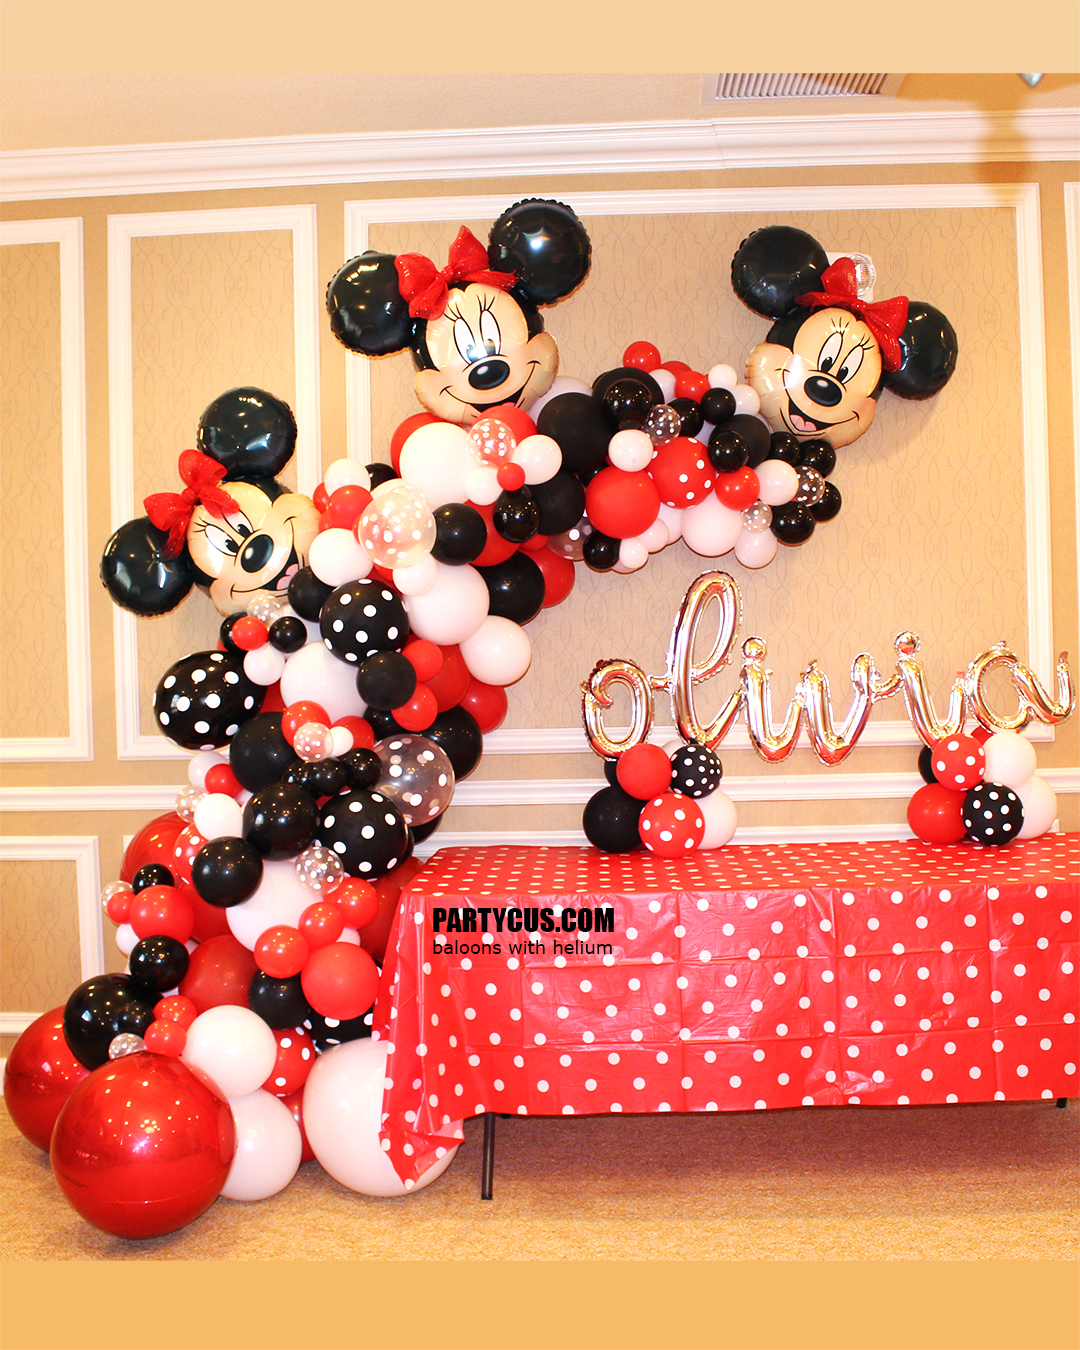 Balloons Garland Minnie Mouse 017 Pc